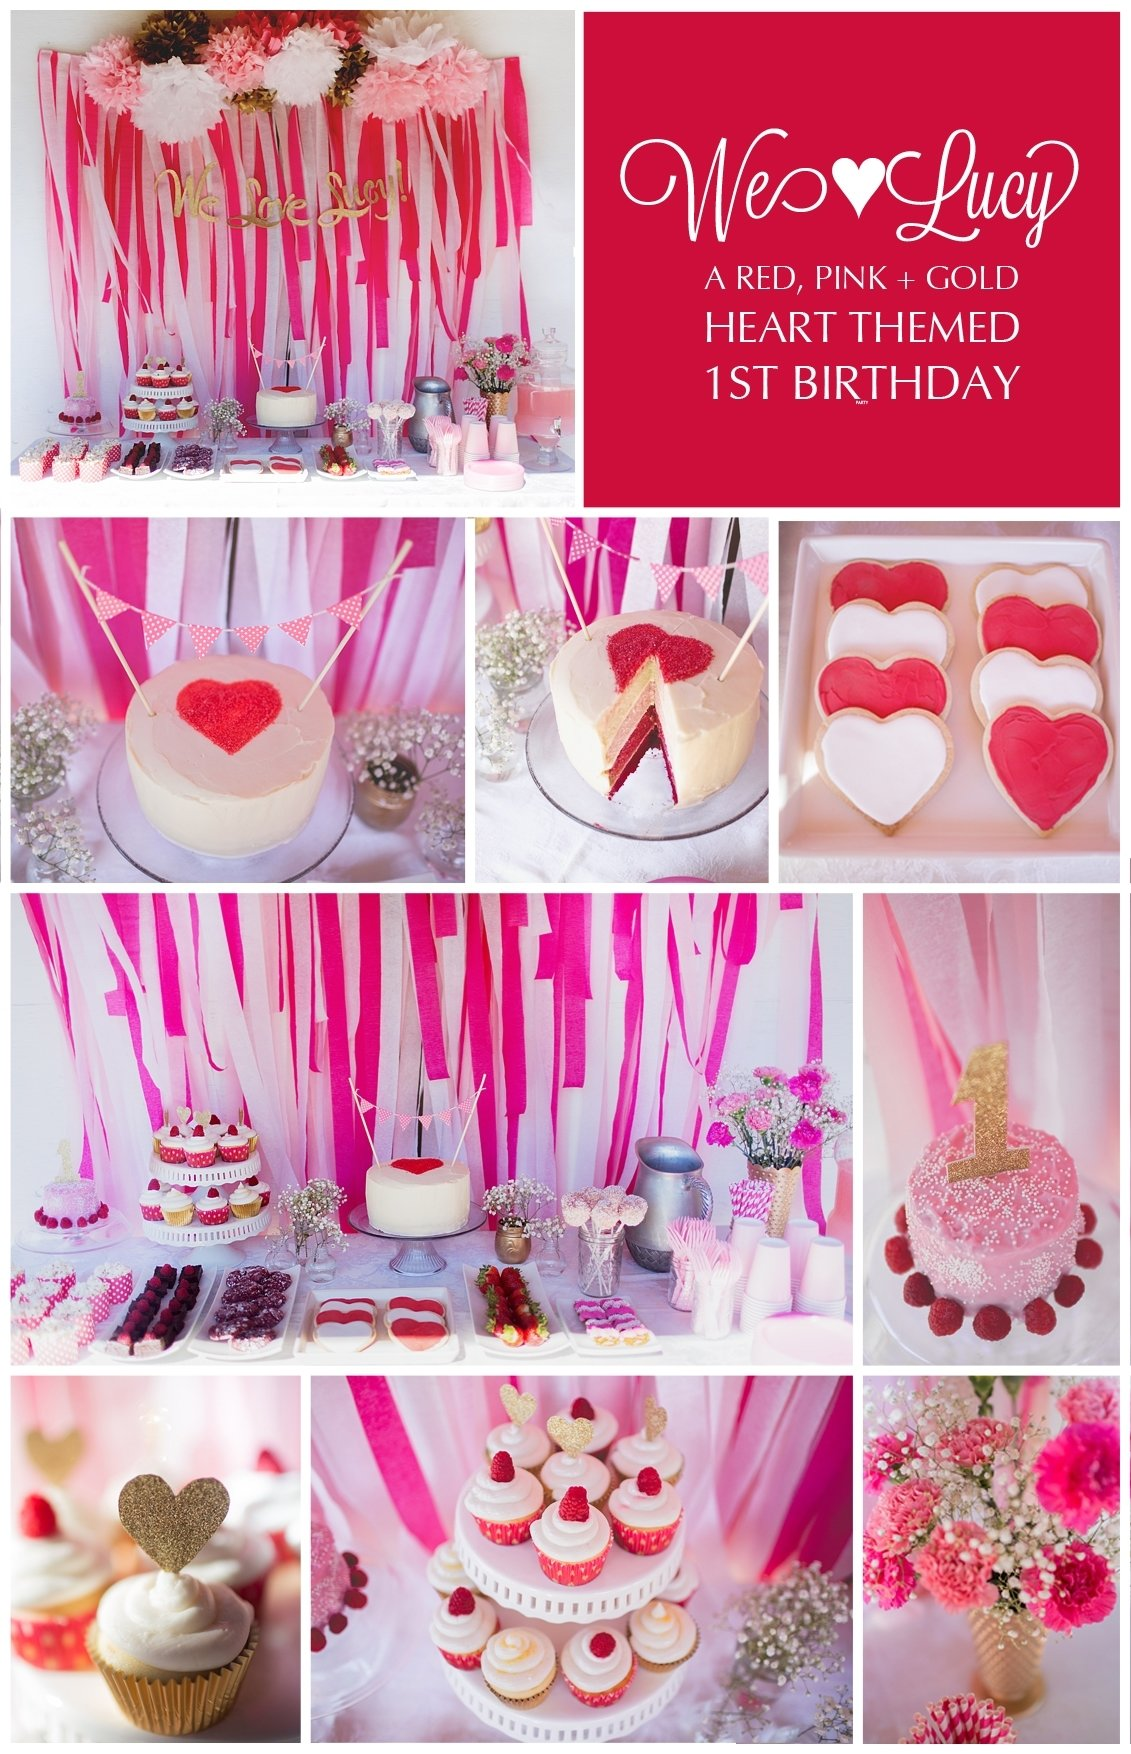 10 Cute Girl Birthday Party Ideas Pinterest we love lucy a first birthday party the titled blog